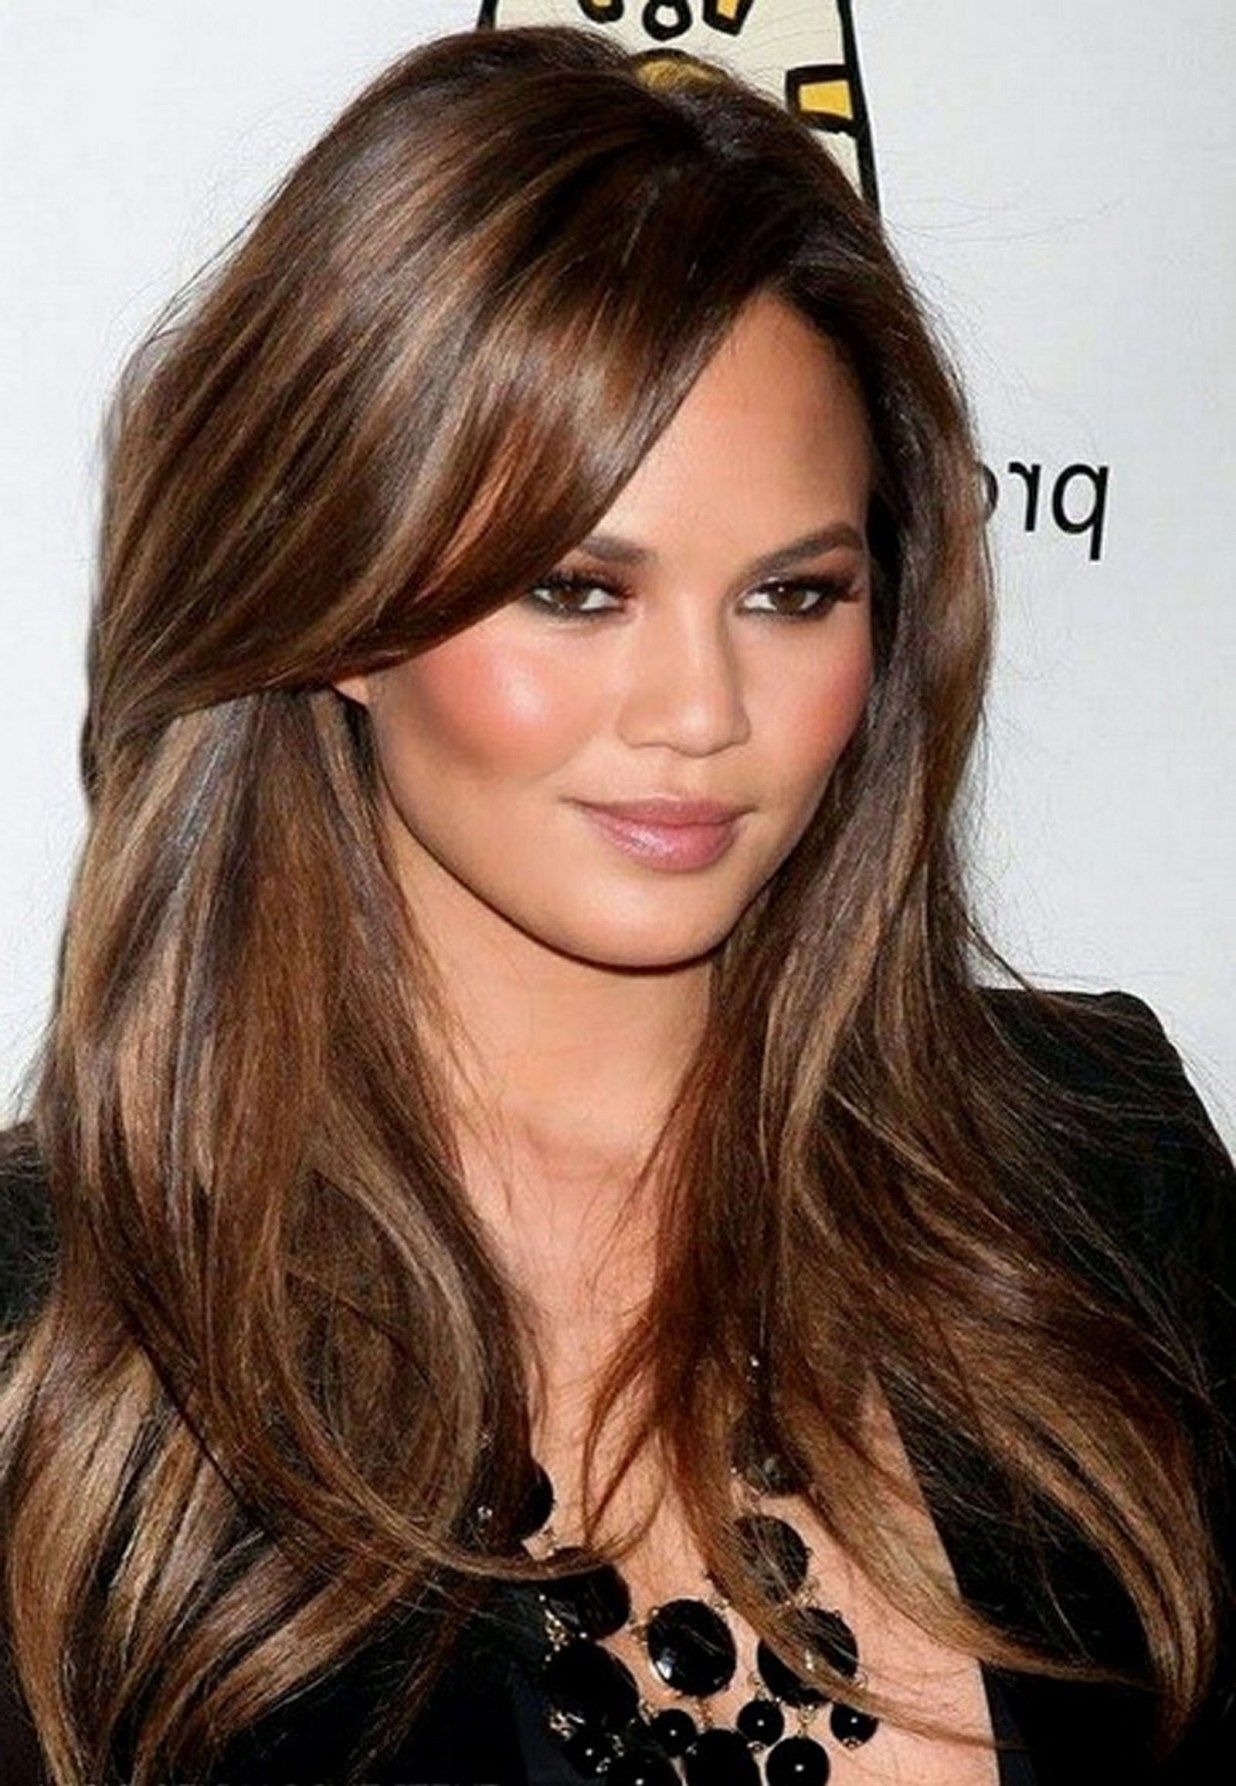 Top Celebrity Hair Color Trends For Spring And Summer 2020 | Brunette hair color with highlights ...